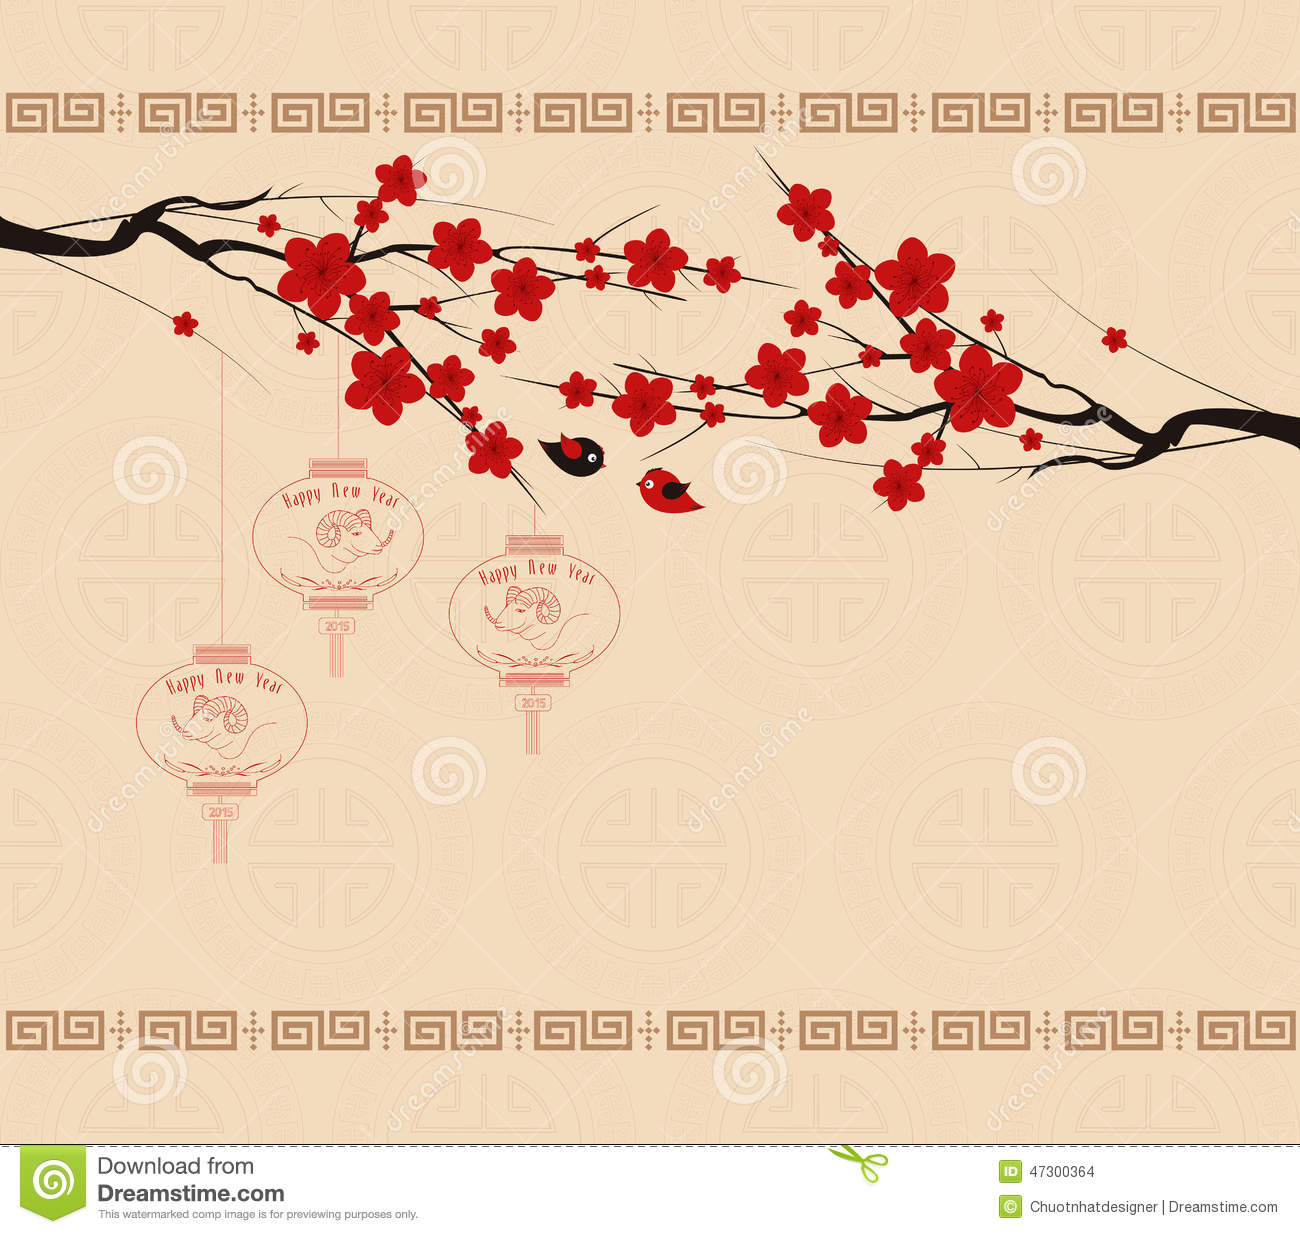 oriental chinese new year element vector designblossom floral background with red chinese lanterns